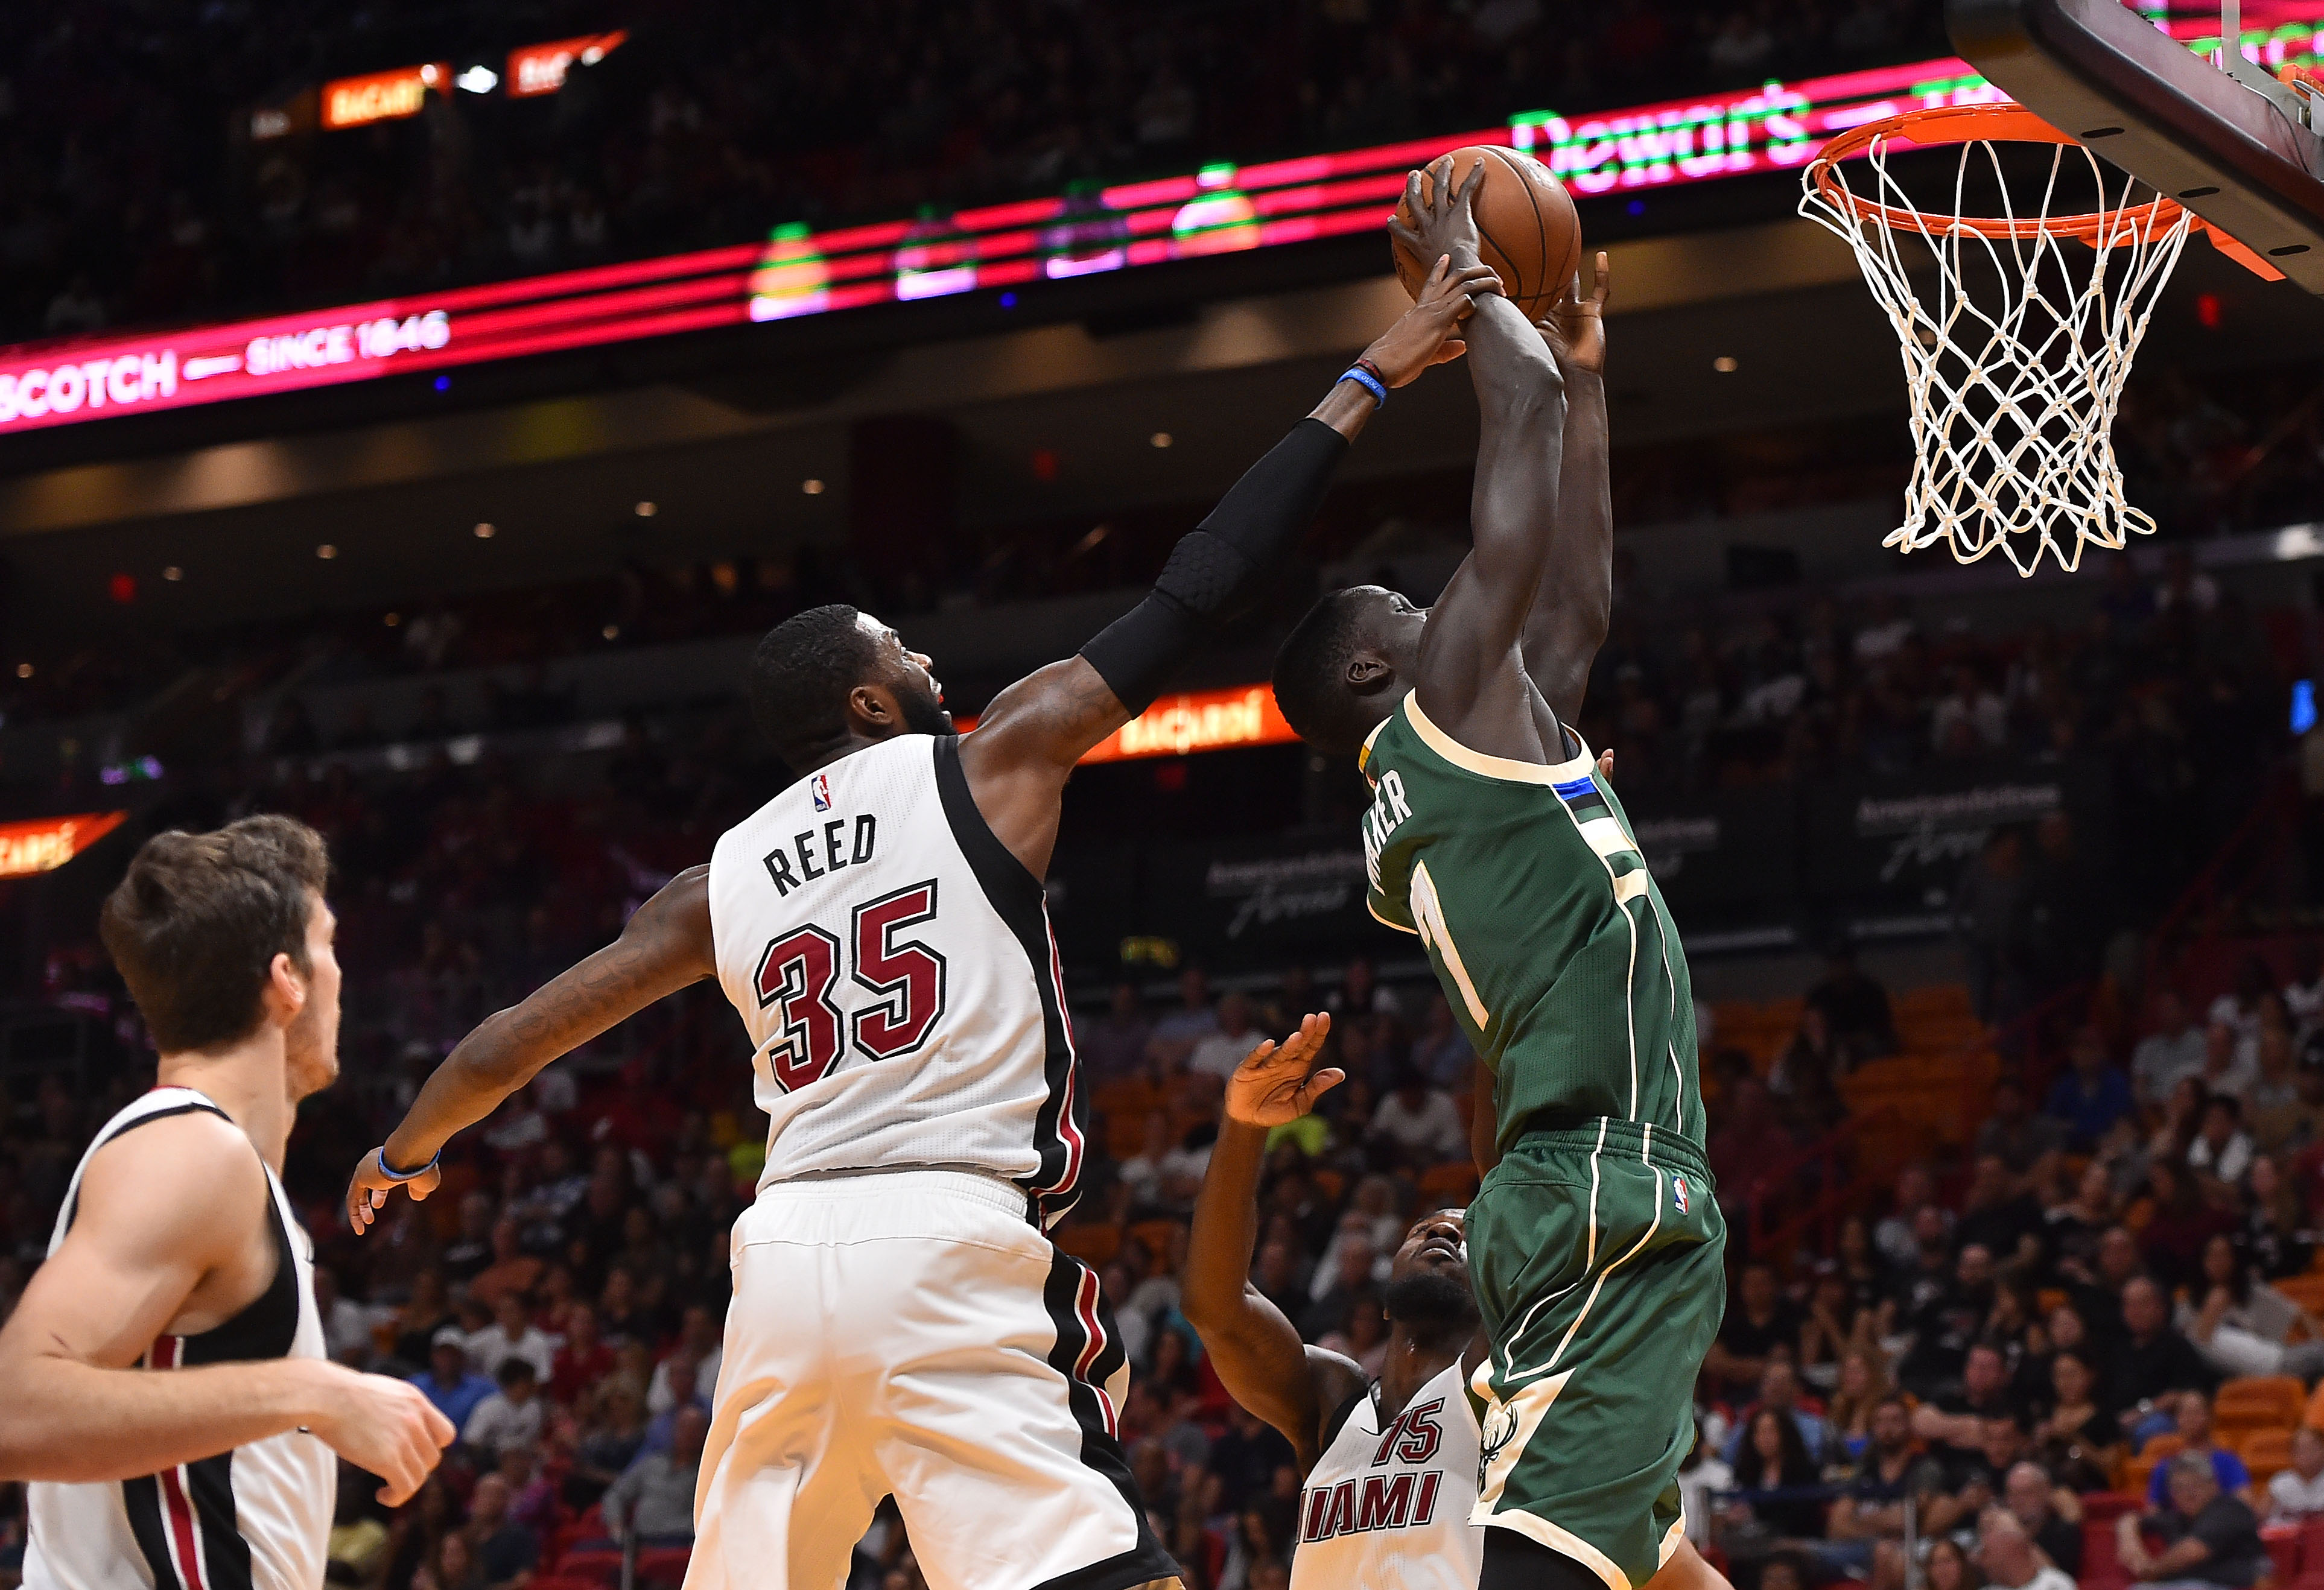 Milwuakee Bucks Daily: Thon Maker Starts Following Return Without Incident To US